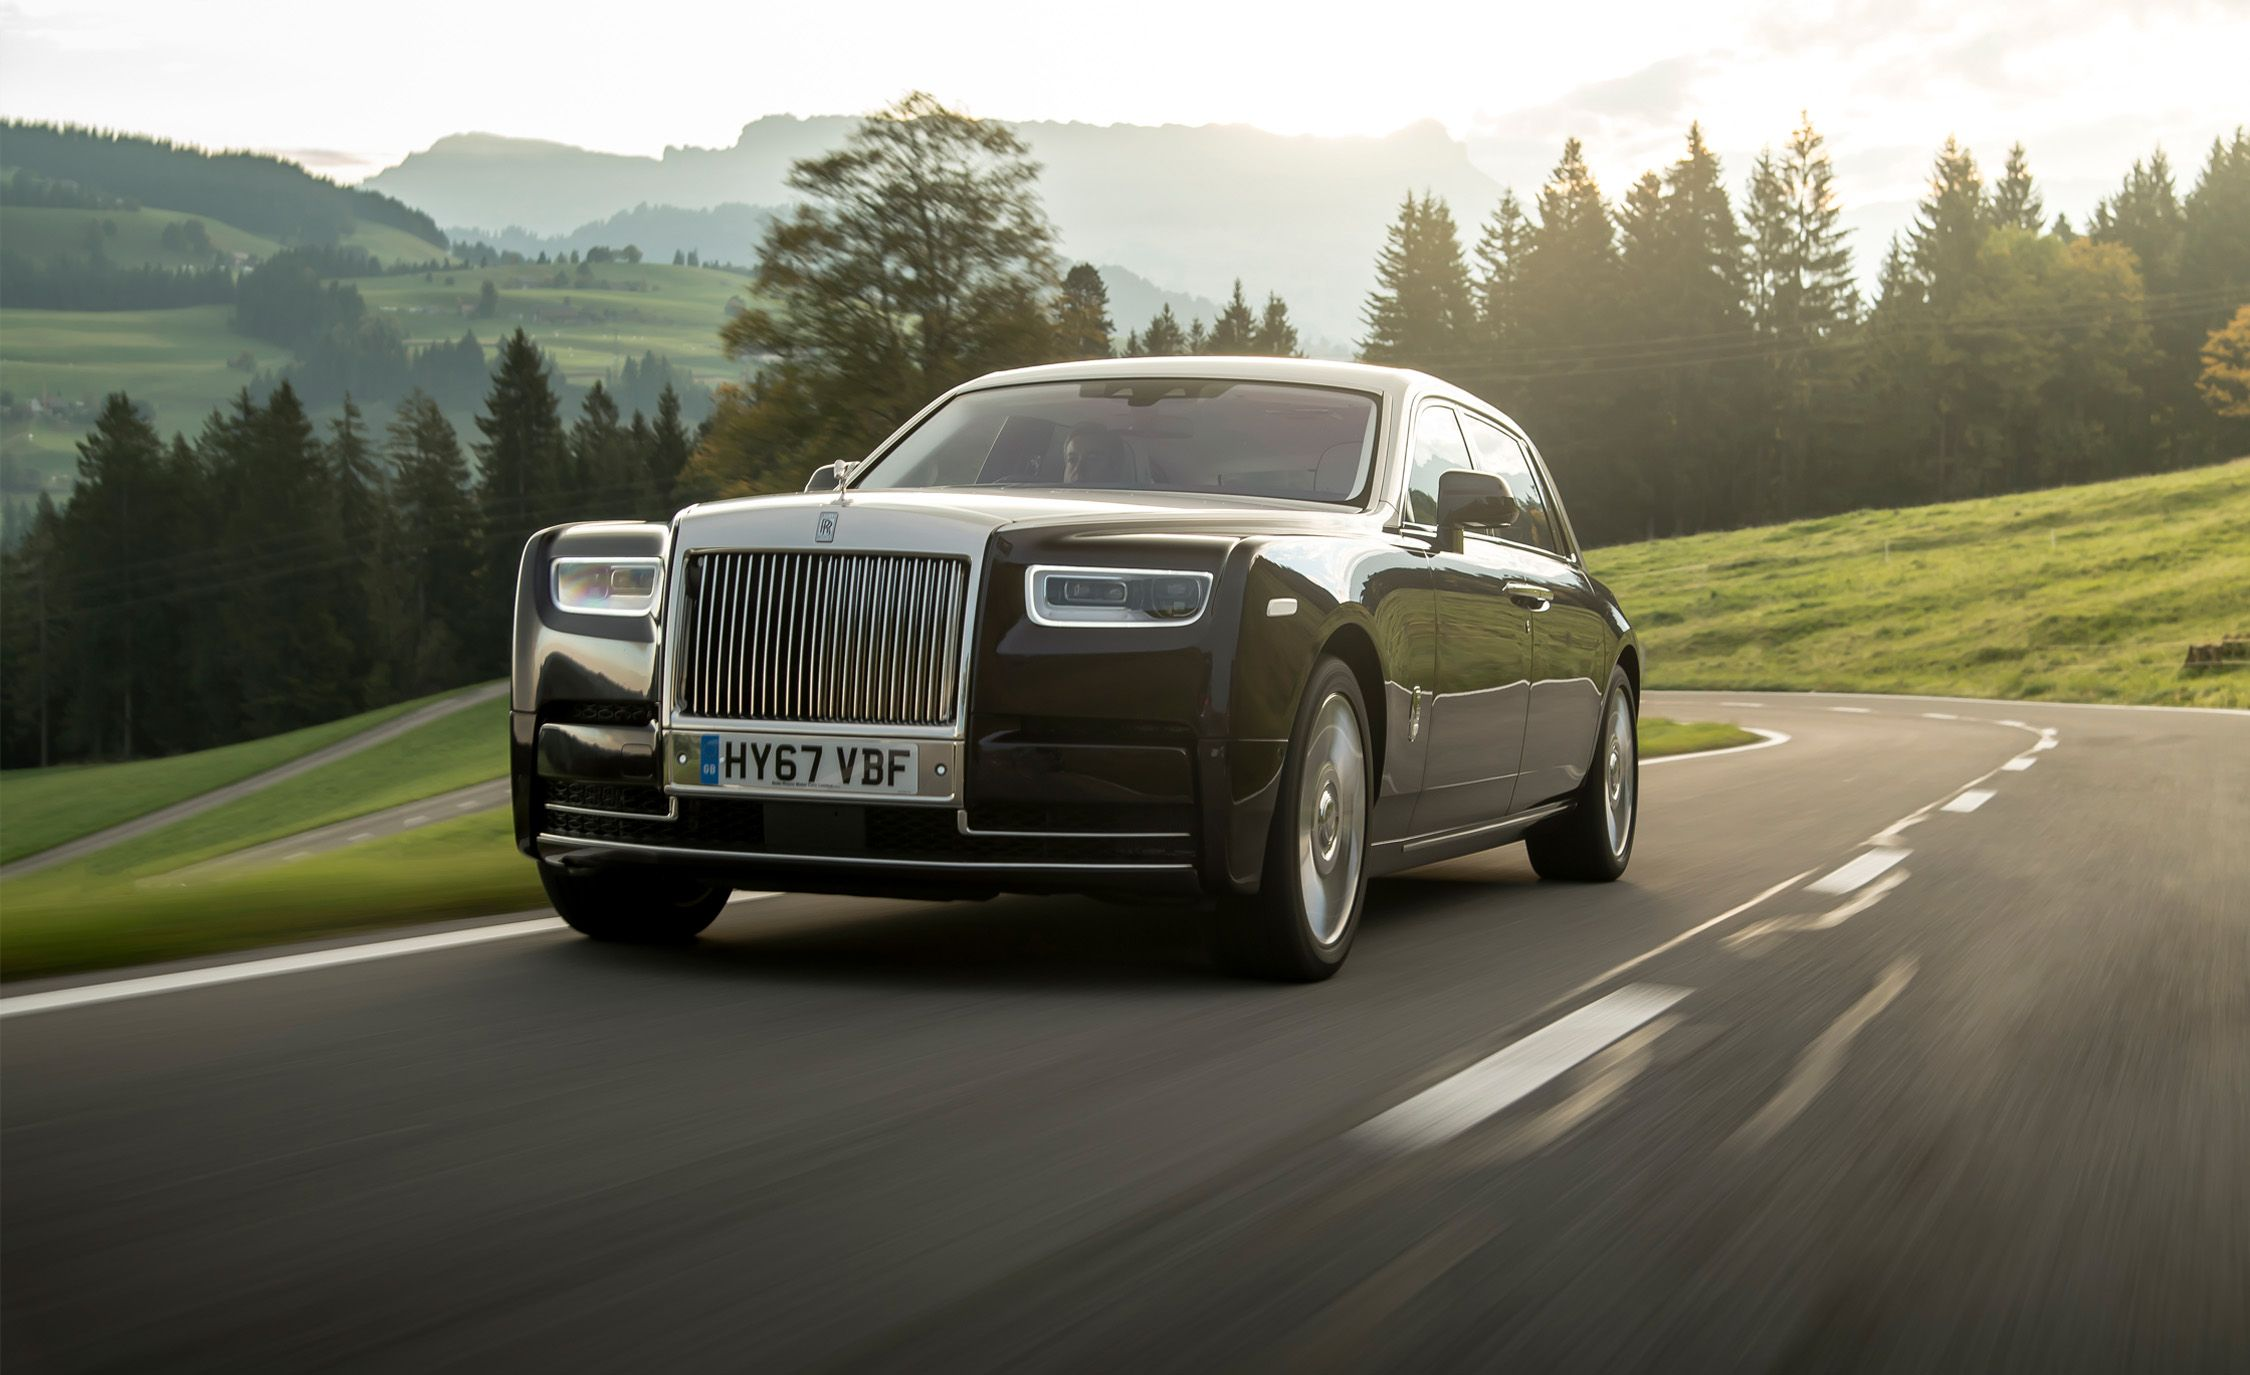 2018 Rolls Royce Phantom Viii First Drive Review Car And Driver